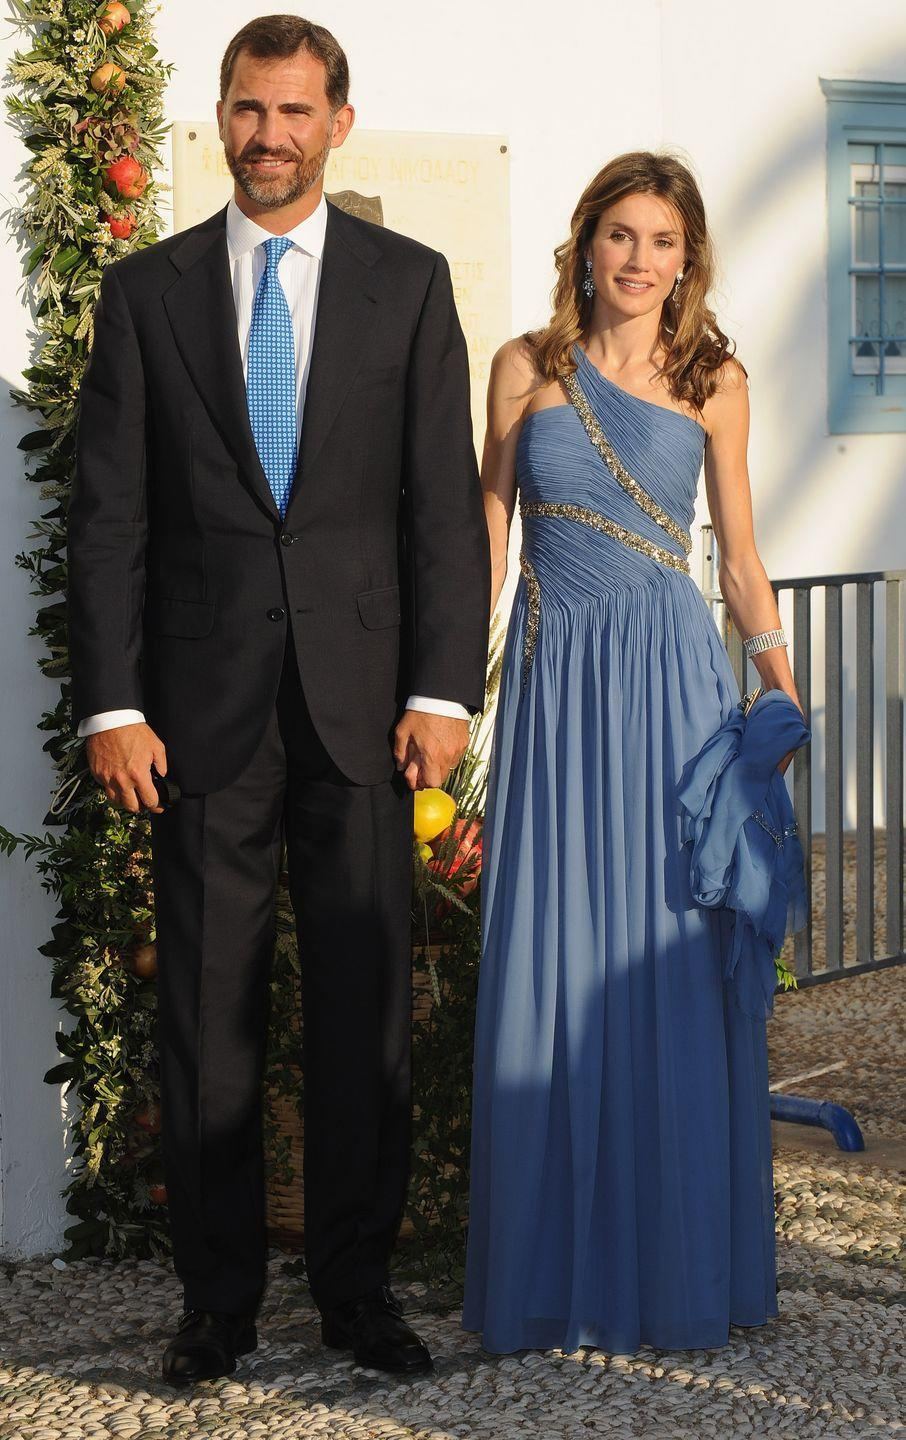 <p>Queen Letizia was a former journalist and news anchor before she married the future King Felipe VI in 2004 in Madrid, Spain. When her husband assumed the throne in 2014, she became the country's first commoner queen.</p>